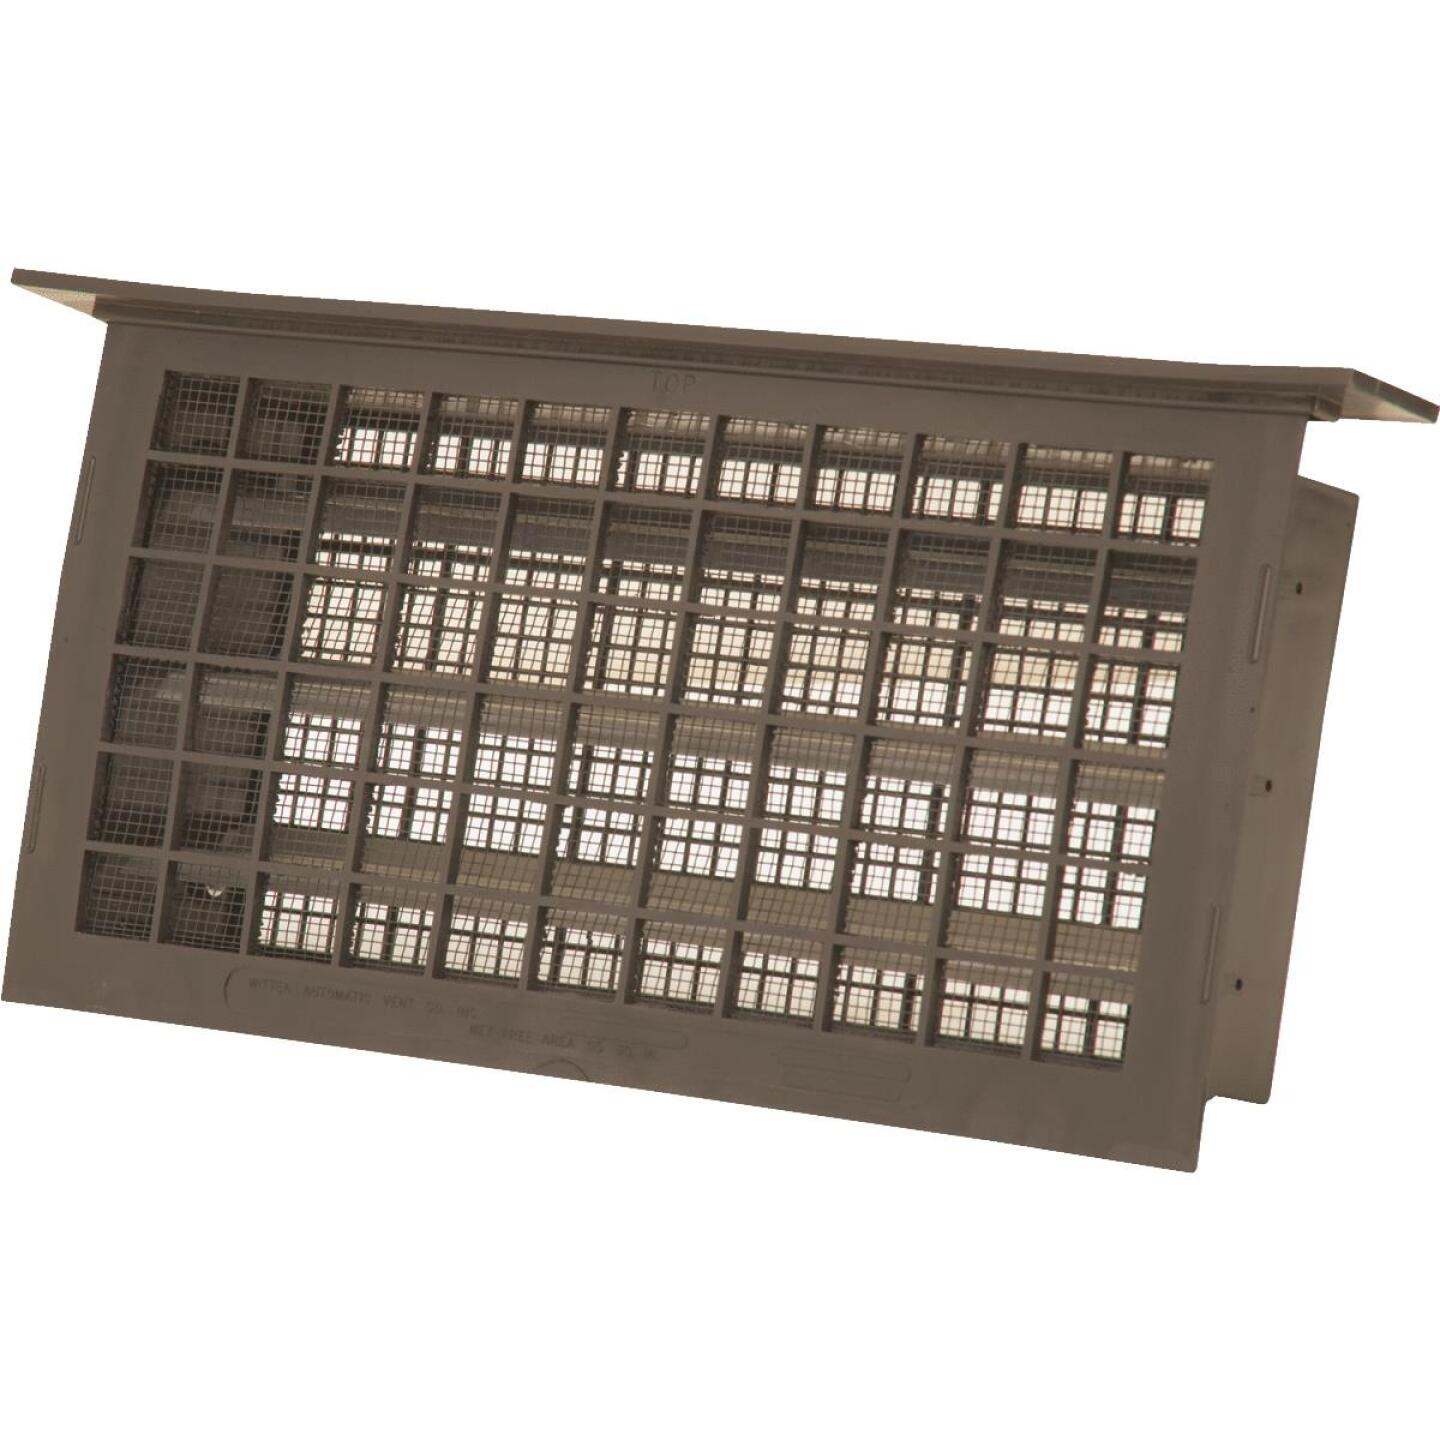 Witten 8 In. x 16 In. Brown Automatic Foundation Ventilator with Lentil Image 1